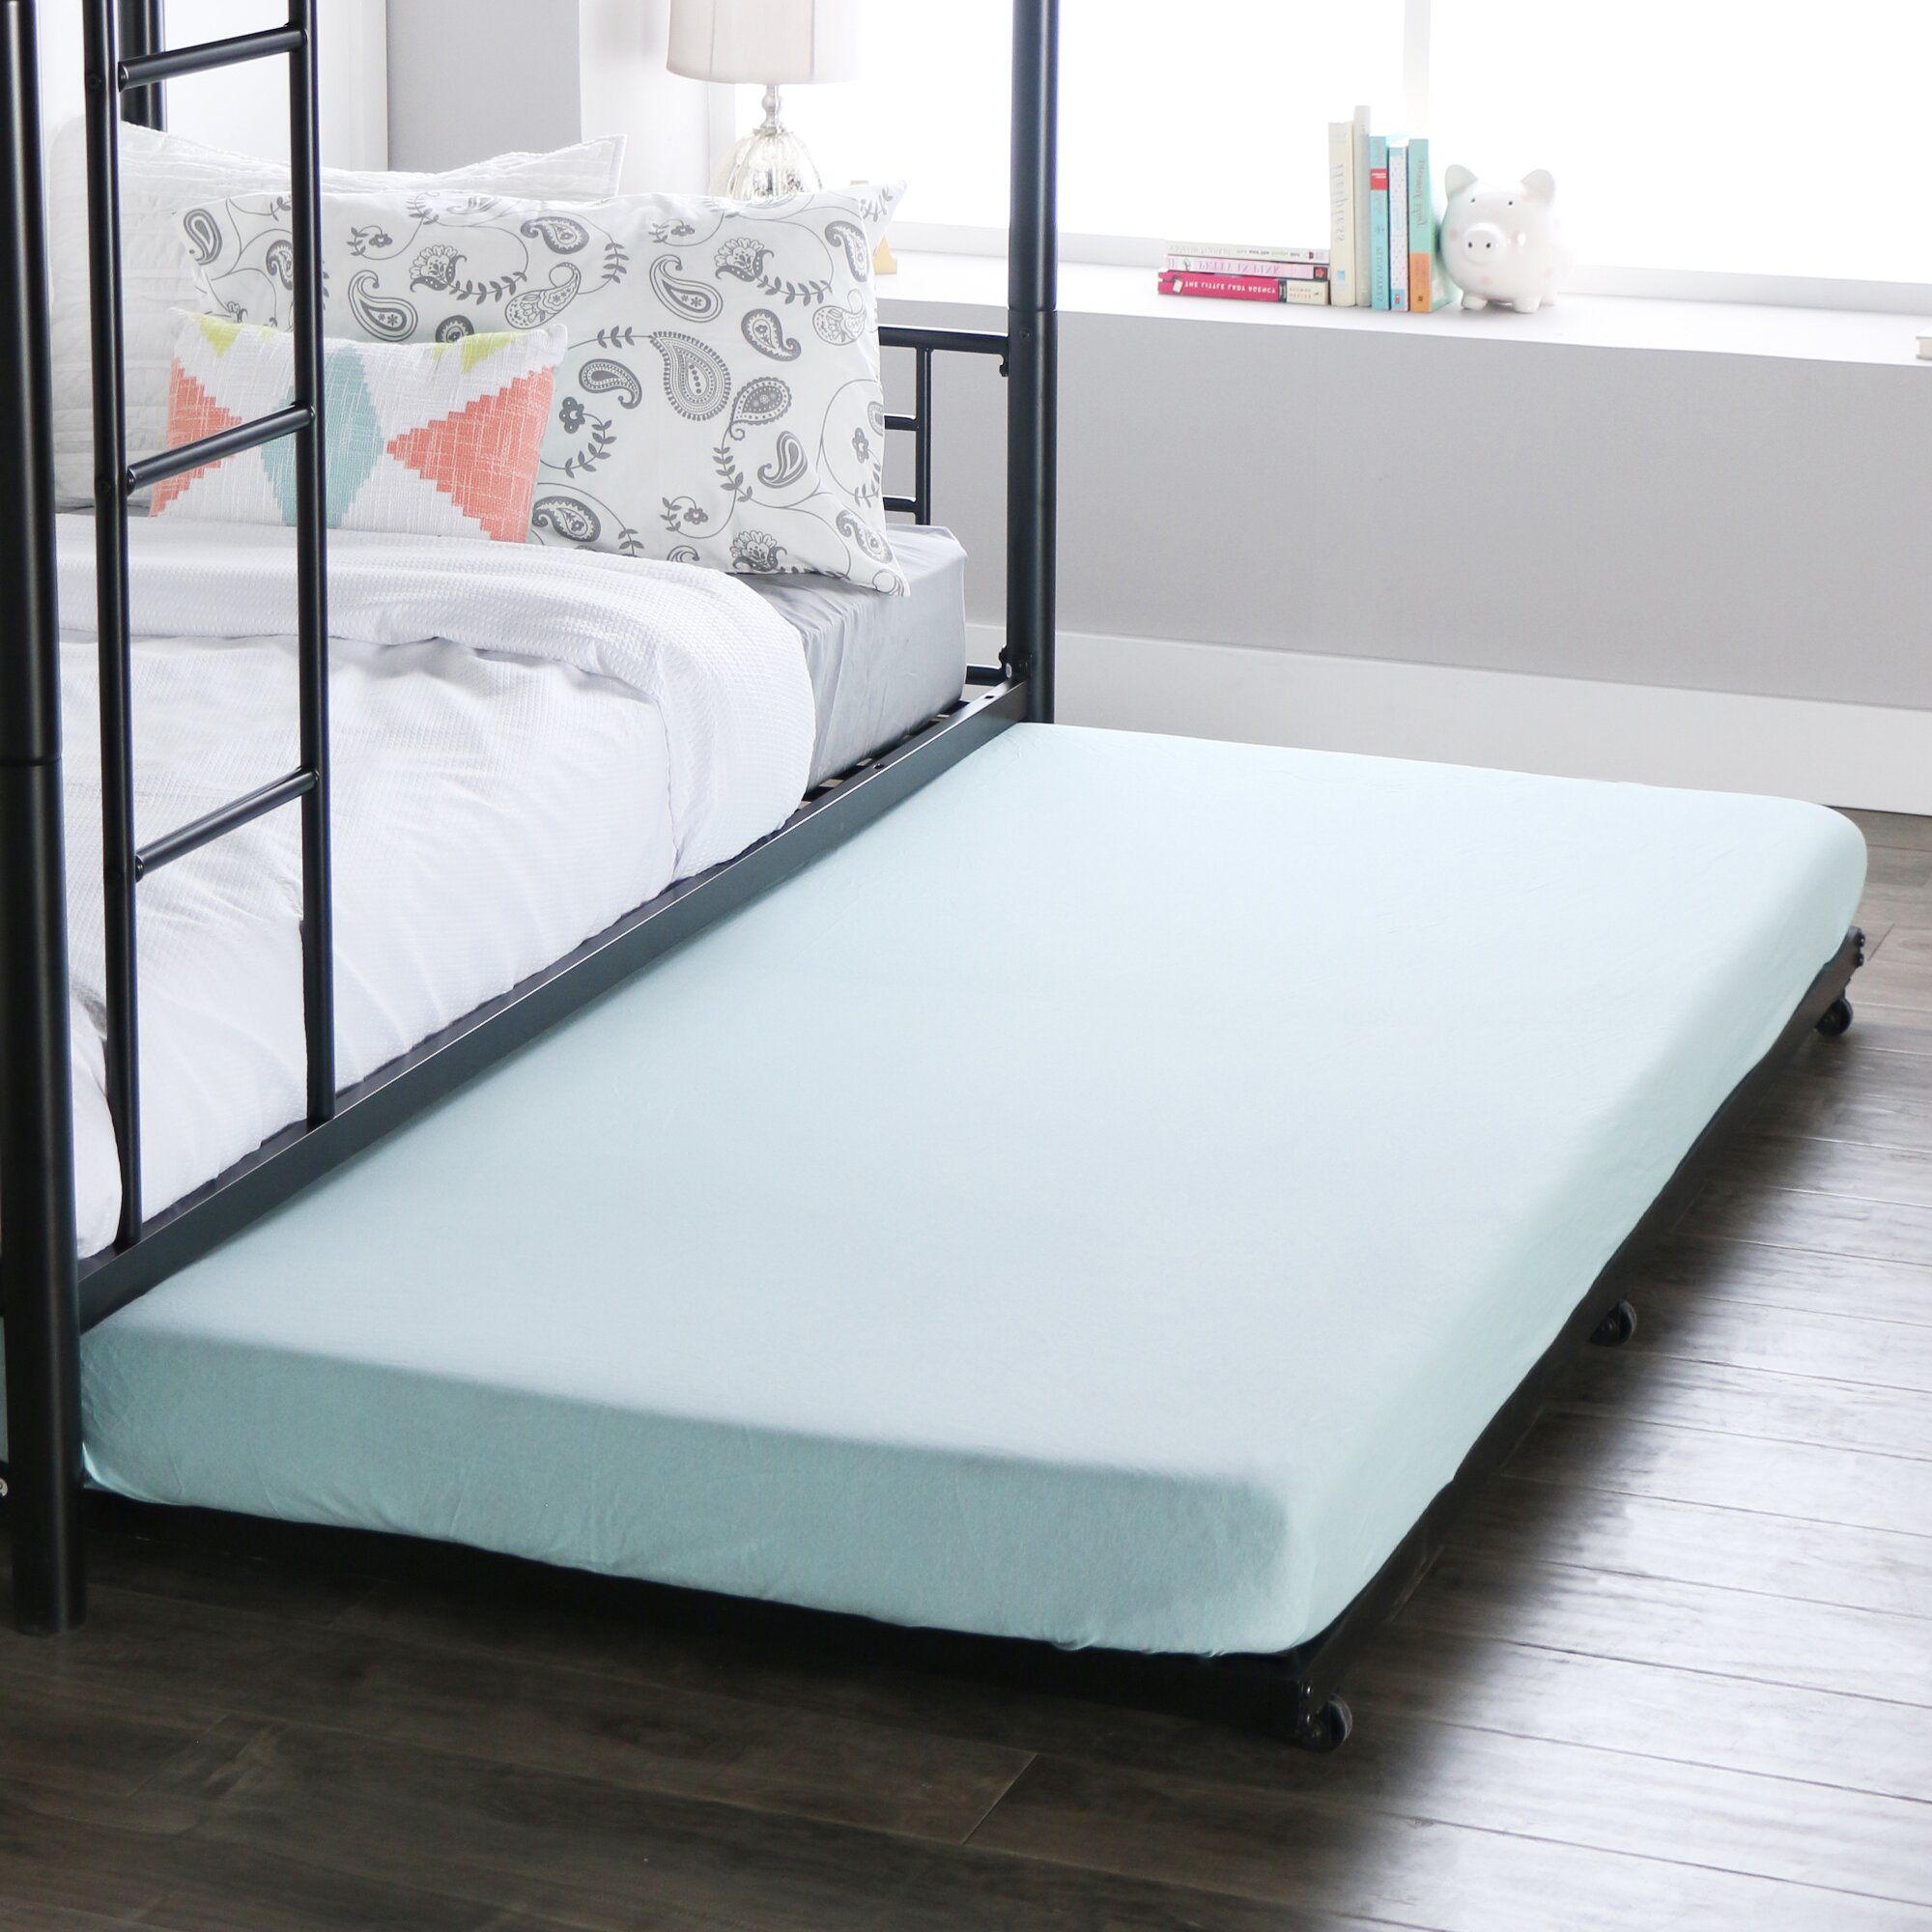 Home loft concepts twin roll out trundle bed frame for Twin mattress and frame